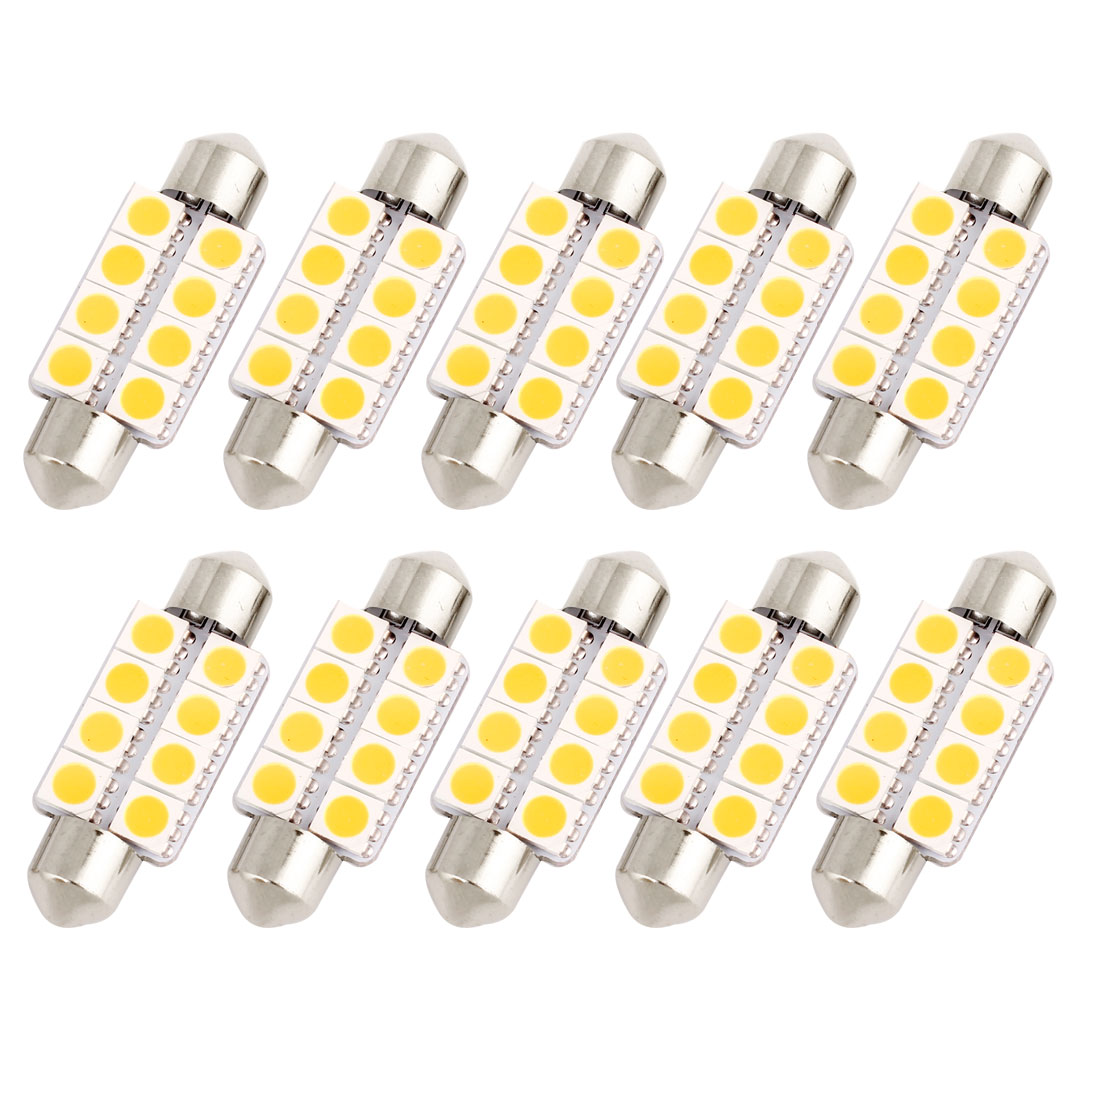 "10 Pcs 39mm 1.54"" 5050 SMD 8-LED Warm White Festoon Dome Light Bulb DE3425 DE3423 Internal"